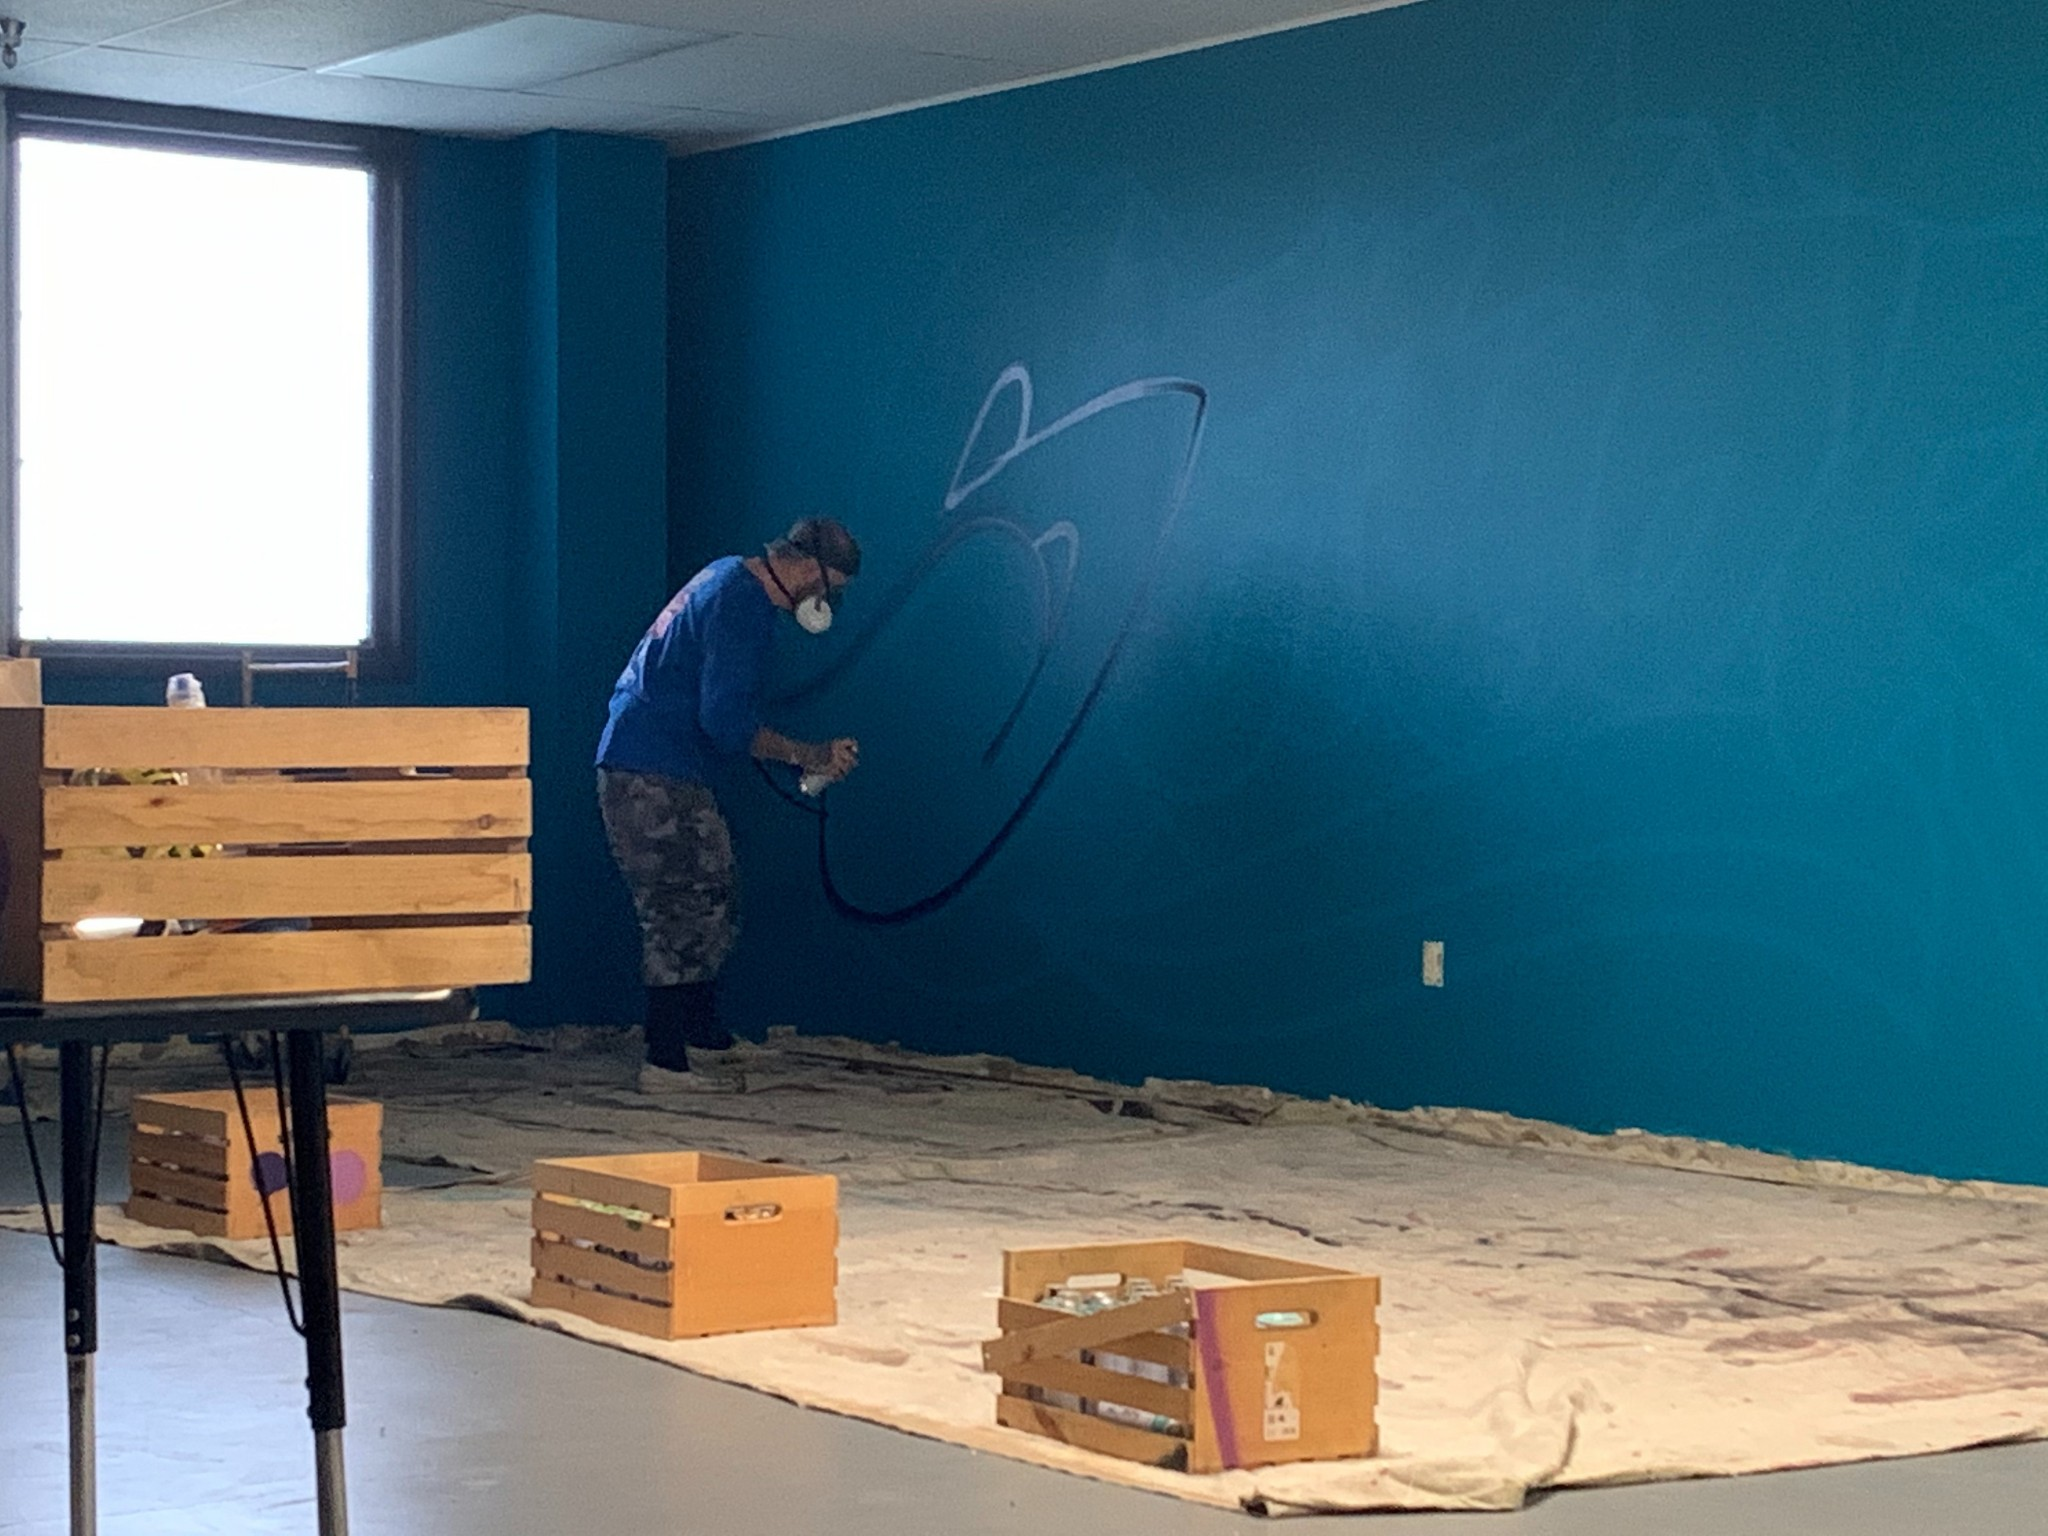 Tony Touch in the early stages of painting graffiti at Summit Academy Toledo. (Submitted photo)